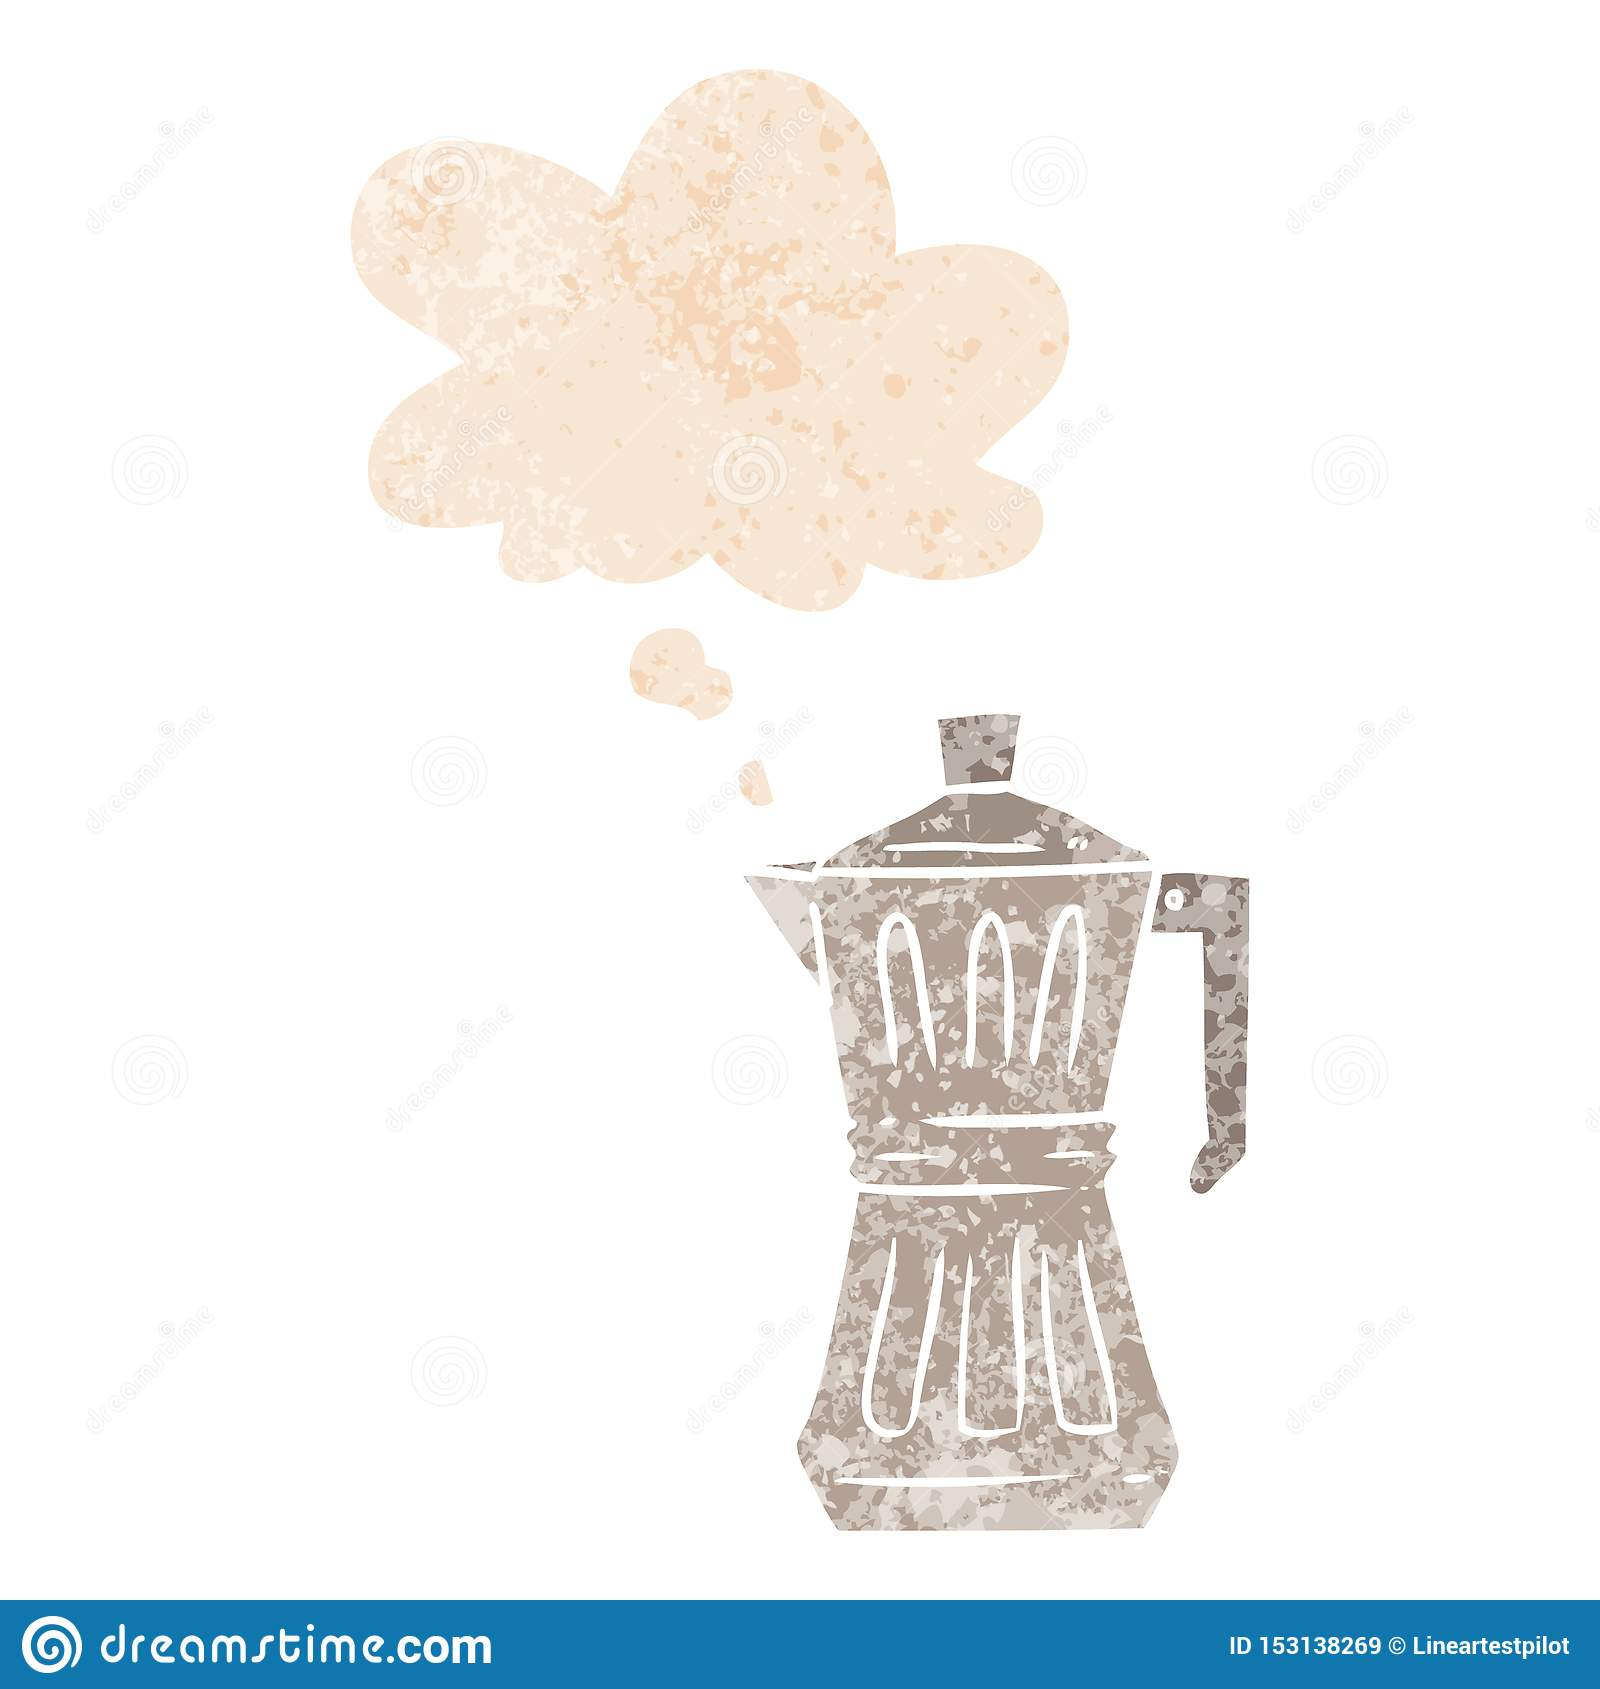 A creative cartoon espresso maker and thought bubble in retro textured style